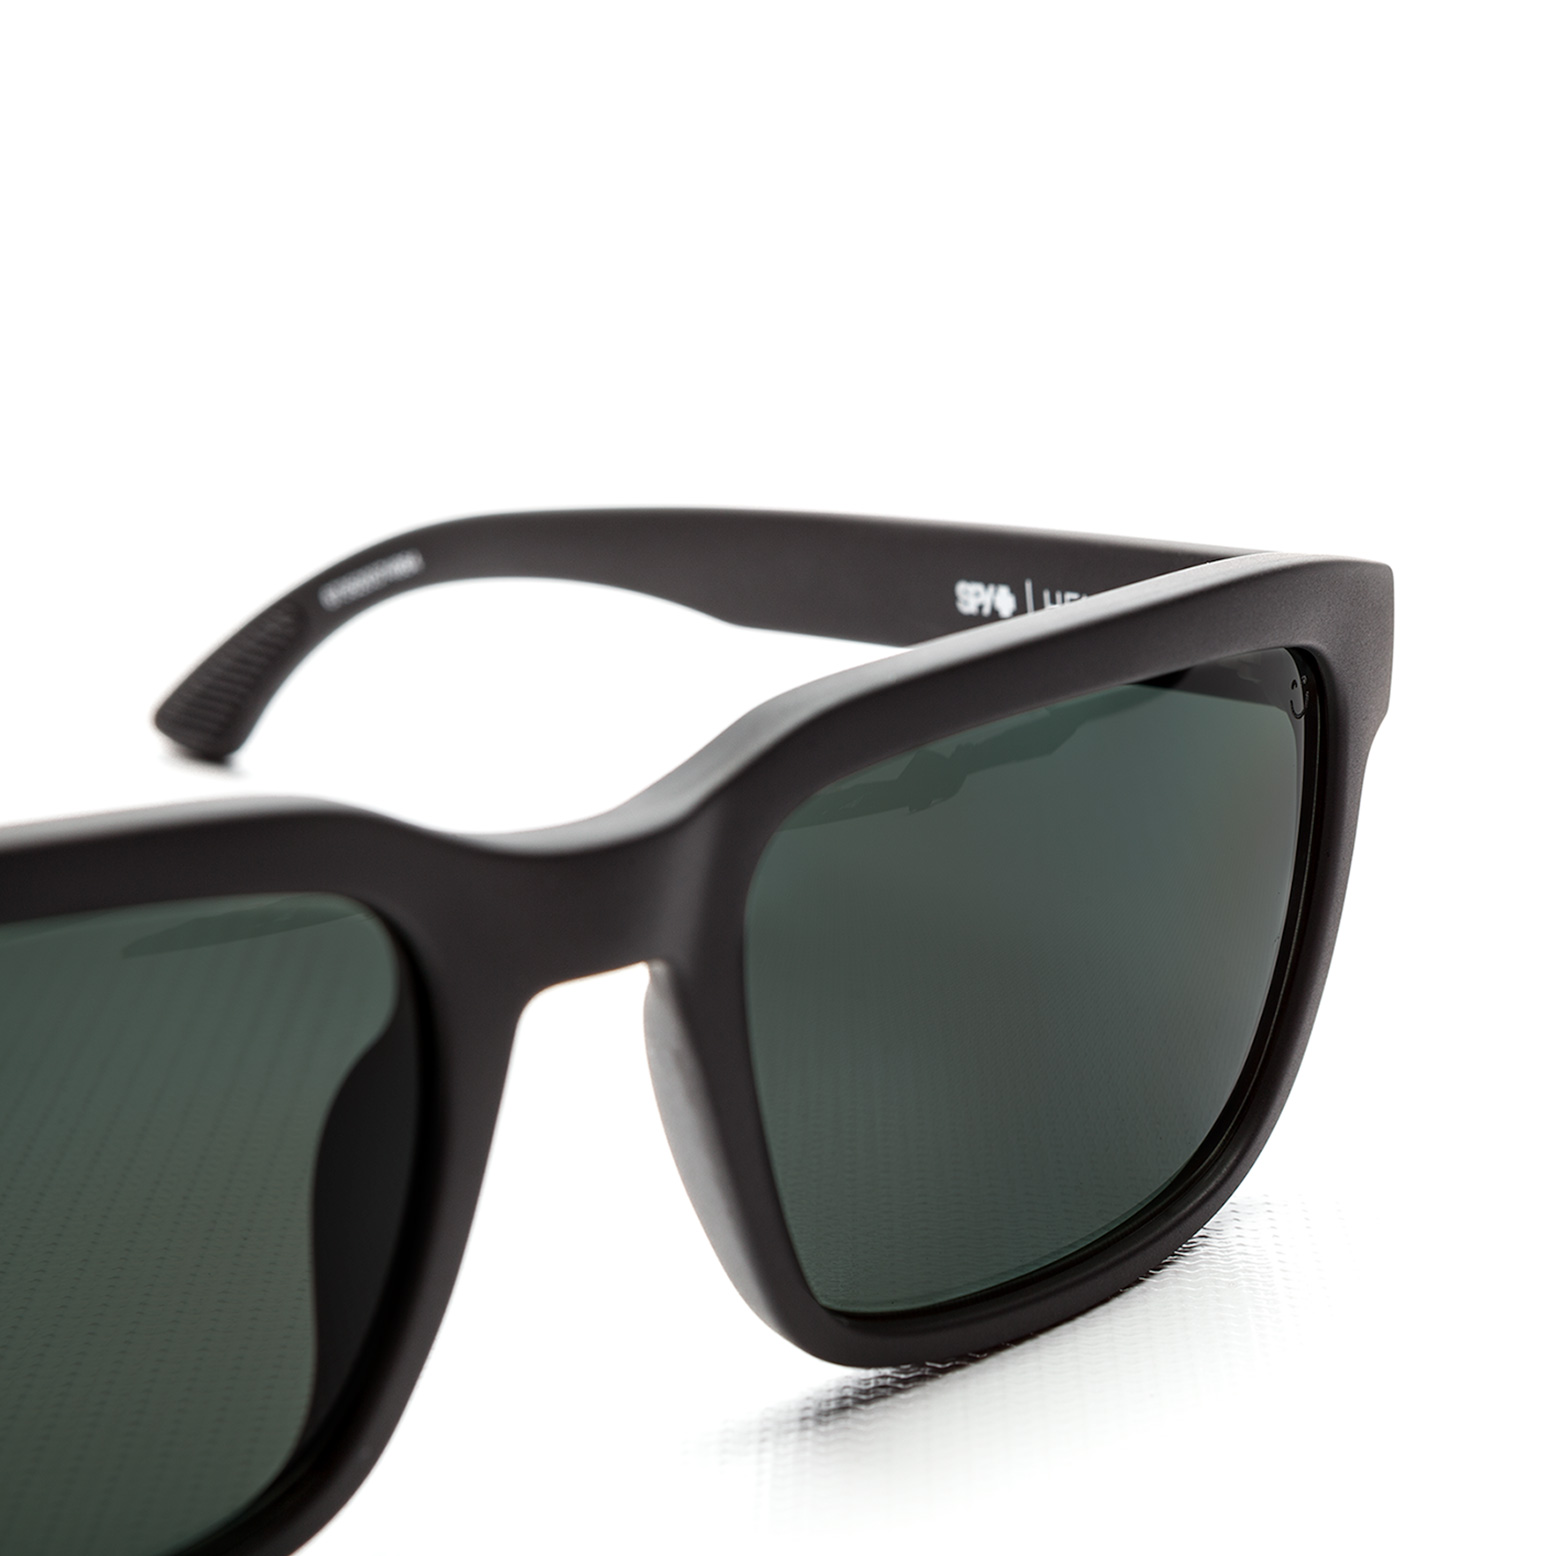 COBB x SPY Optic Helm 2 Polarized Sunglasses Happy Gray Green